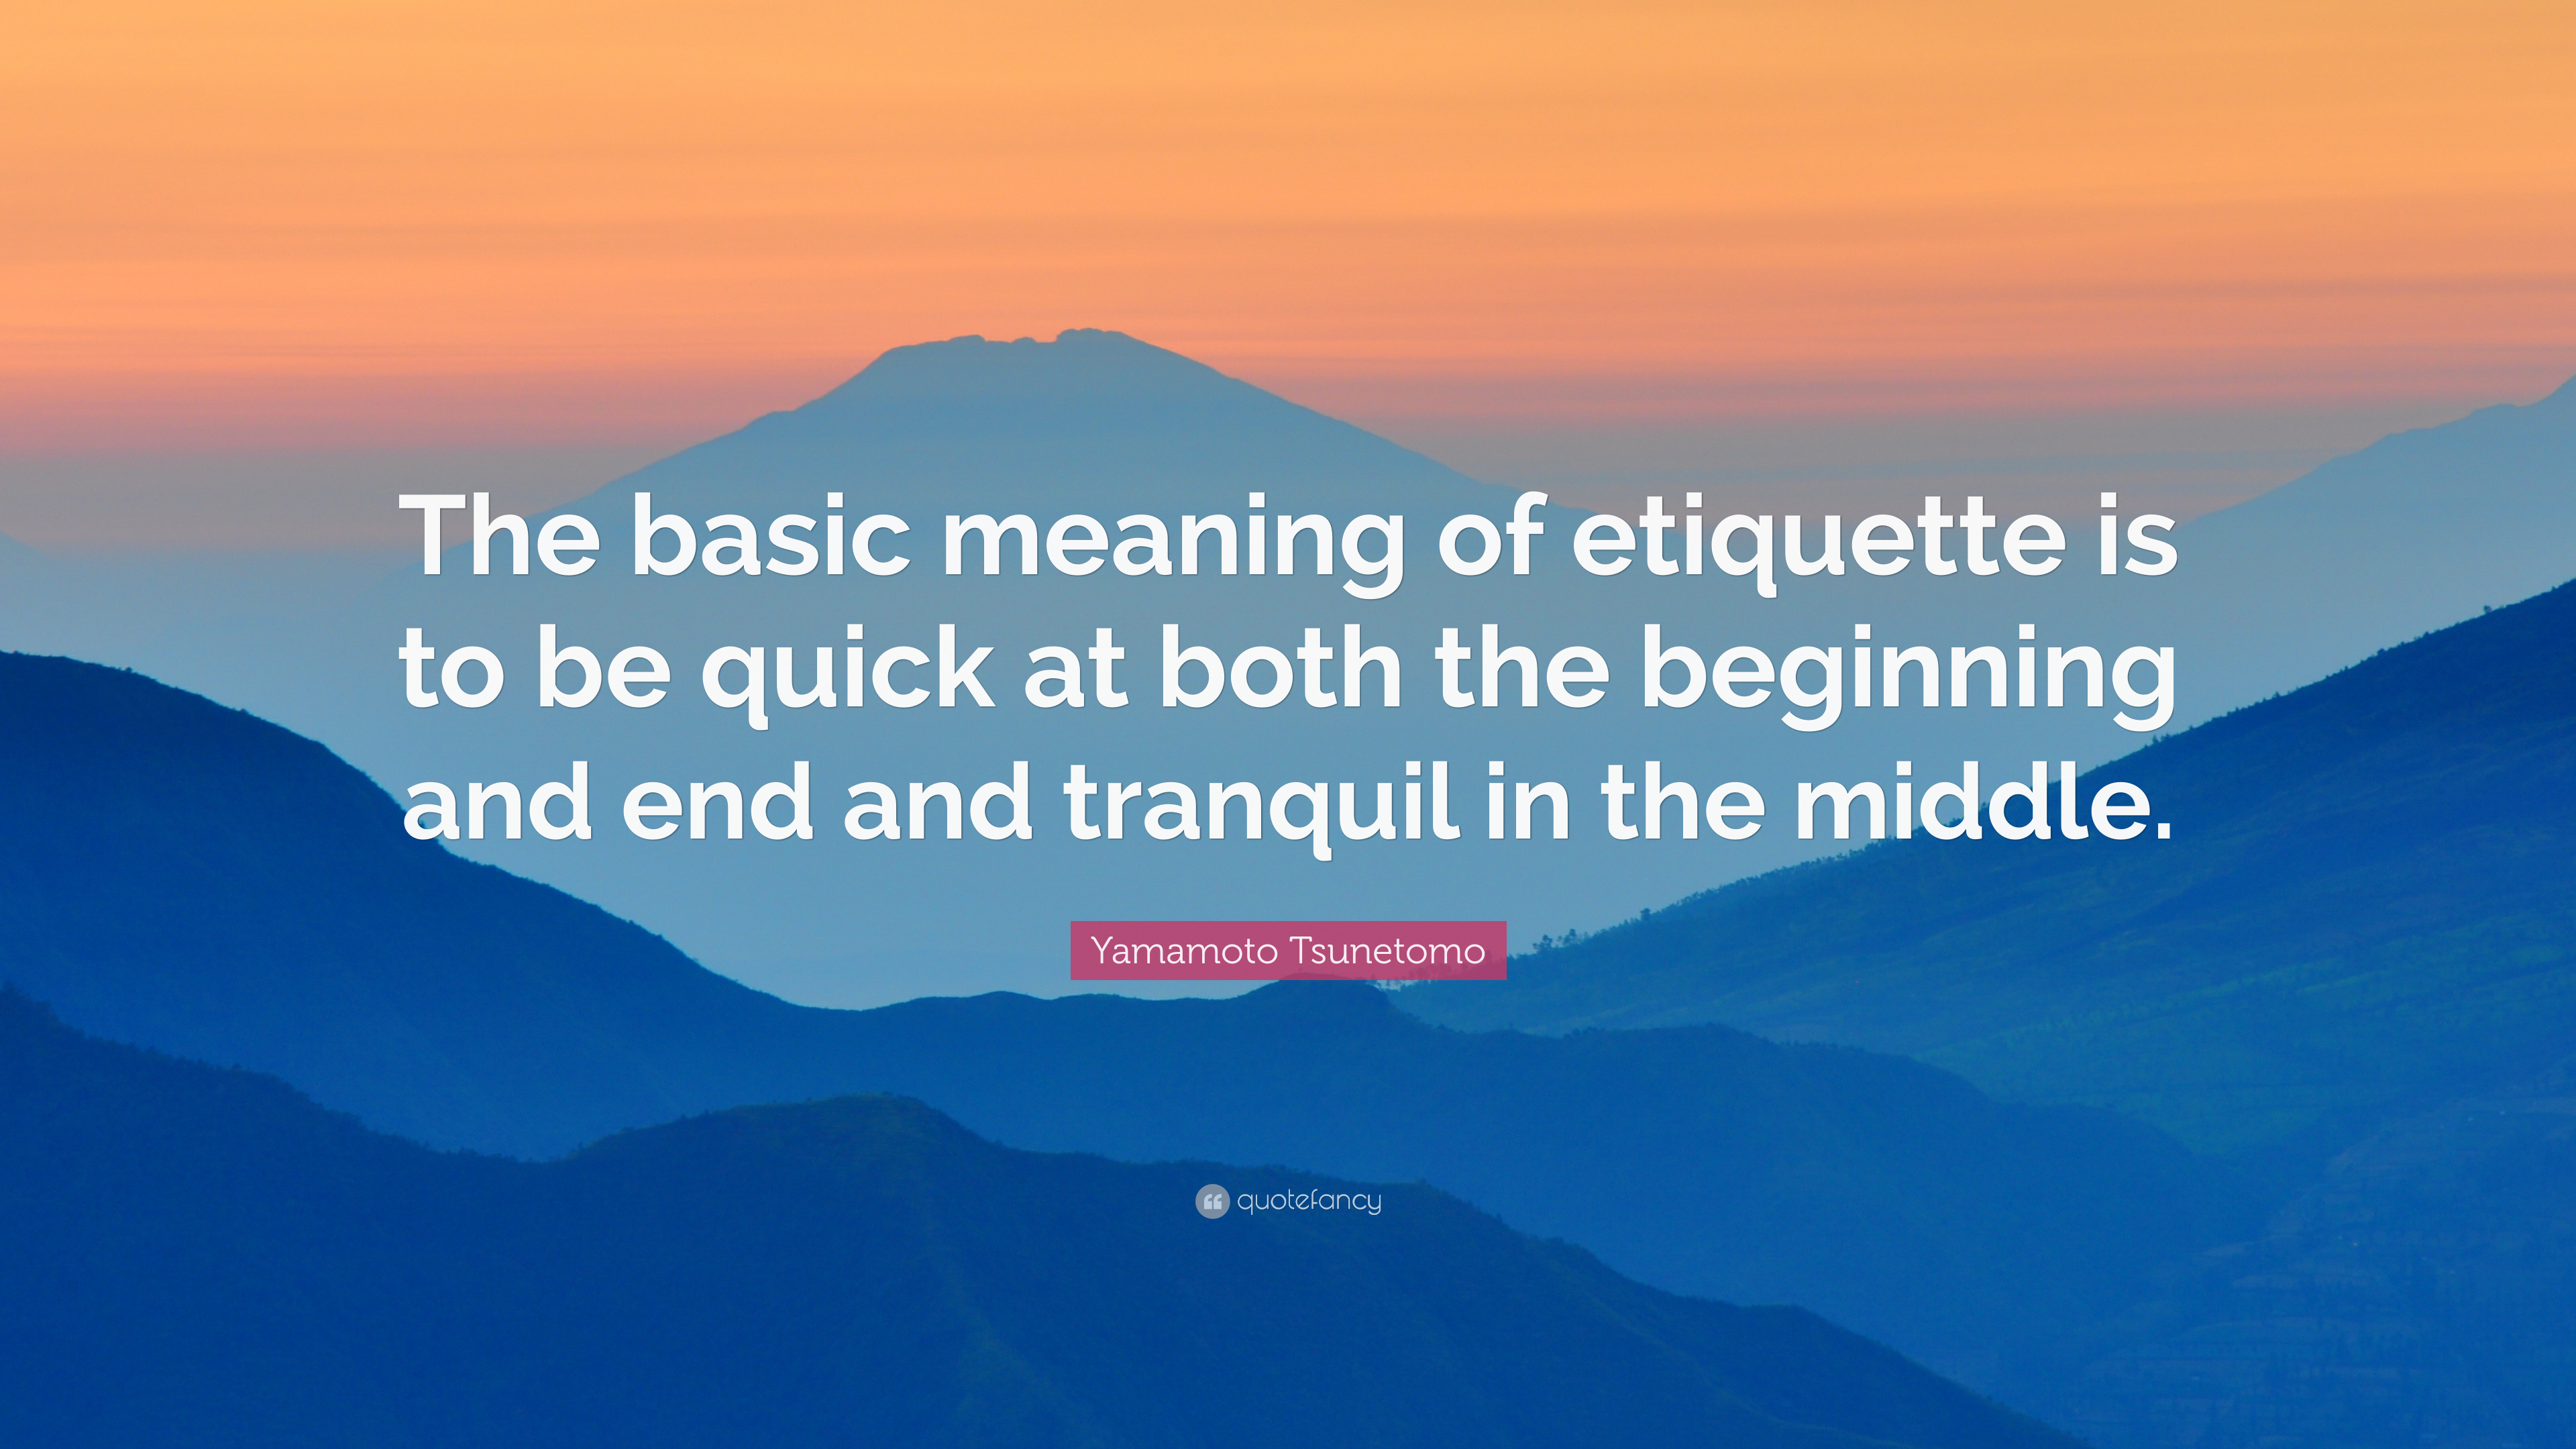 Yamamoto Tsunetomo Quote u201cThe basic meaning of etiquette is to be quick at both  sc 1 st  Quotefancy & Yamamoto Tsunetomo Quote: u201cThe basic meaning of etiquette is to be ...